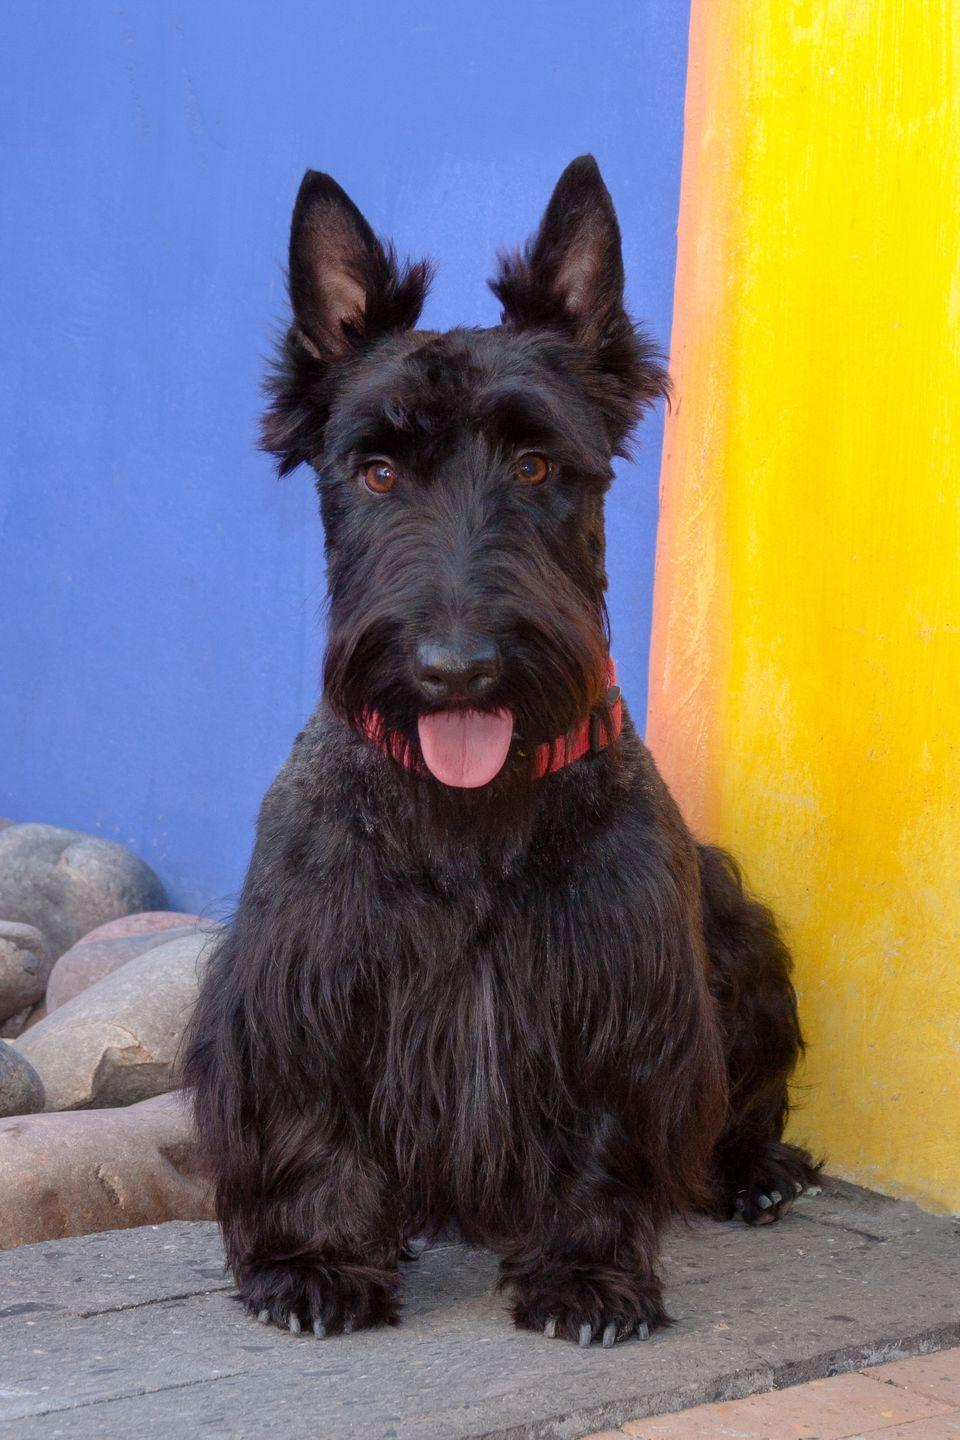 """<p>You may know the adorable and personality-filled Scottie dog from Disney classic <em><a href=""""https://www.goodhousekeeping.com/life/pets/g25350641/dog-movies/"""" rel=""""nofollow noopener"""" target=""""_blank"""" data-ylk=""""slk:Lady and the Tramp"""" class=""""link rapid-noclick-resp"""">Lady and the Tramp</a>, </em>but the independent and sometimes stubborn Scotties<span class=""""redactor-invisible-space""""> make great pets IRL, too. The were originally bred as fierce hunters, and their wiry, weather-resistant coats kept them protected in all climates. Today, their dignified beard will probably spend most of its time gracing your couch. </span></p>"""